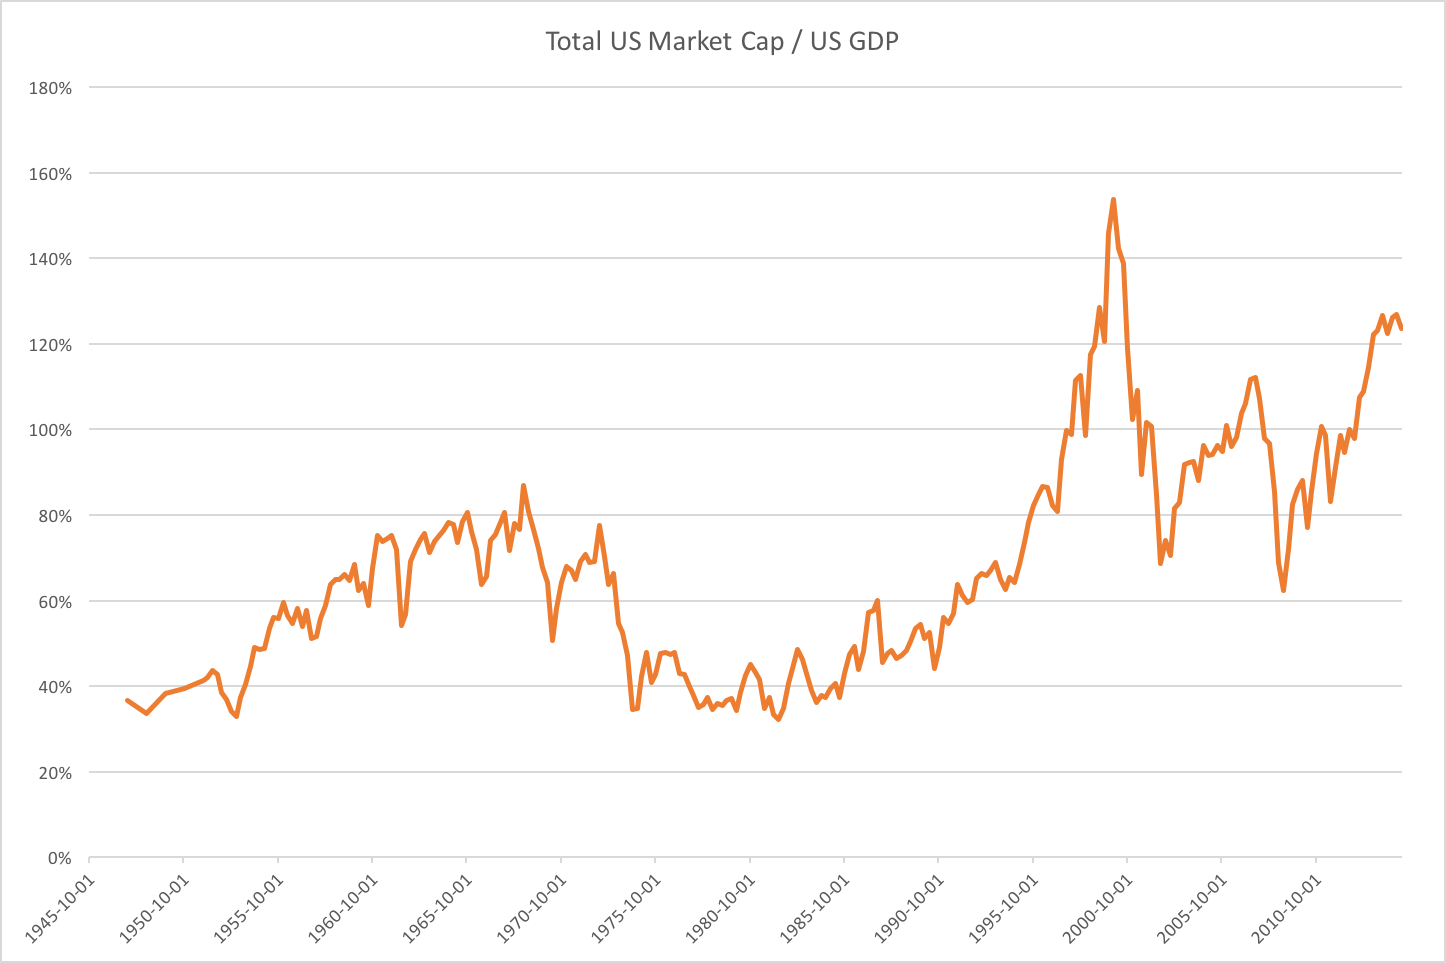 Total US Market Cap divided by US GDP